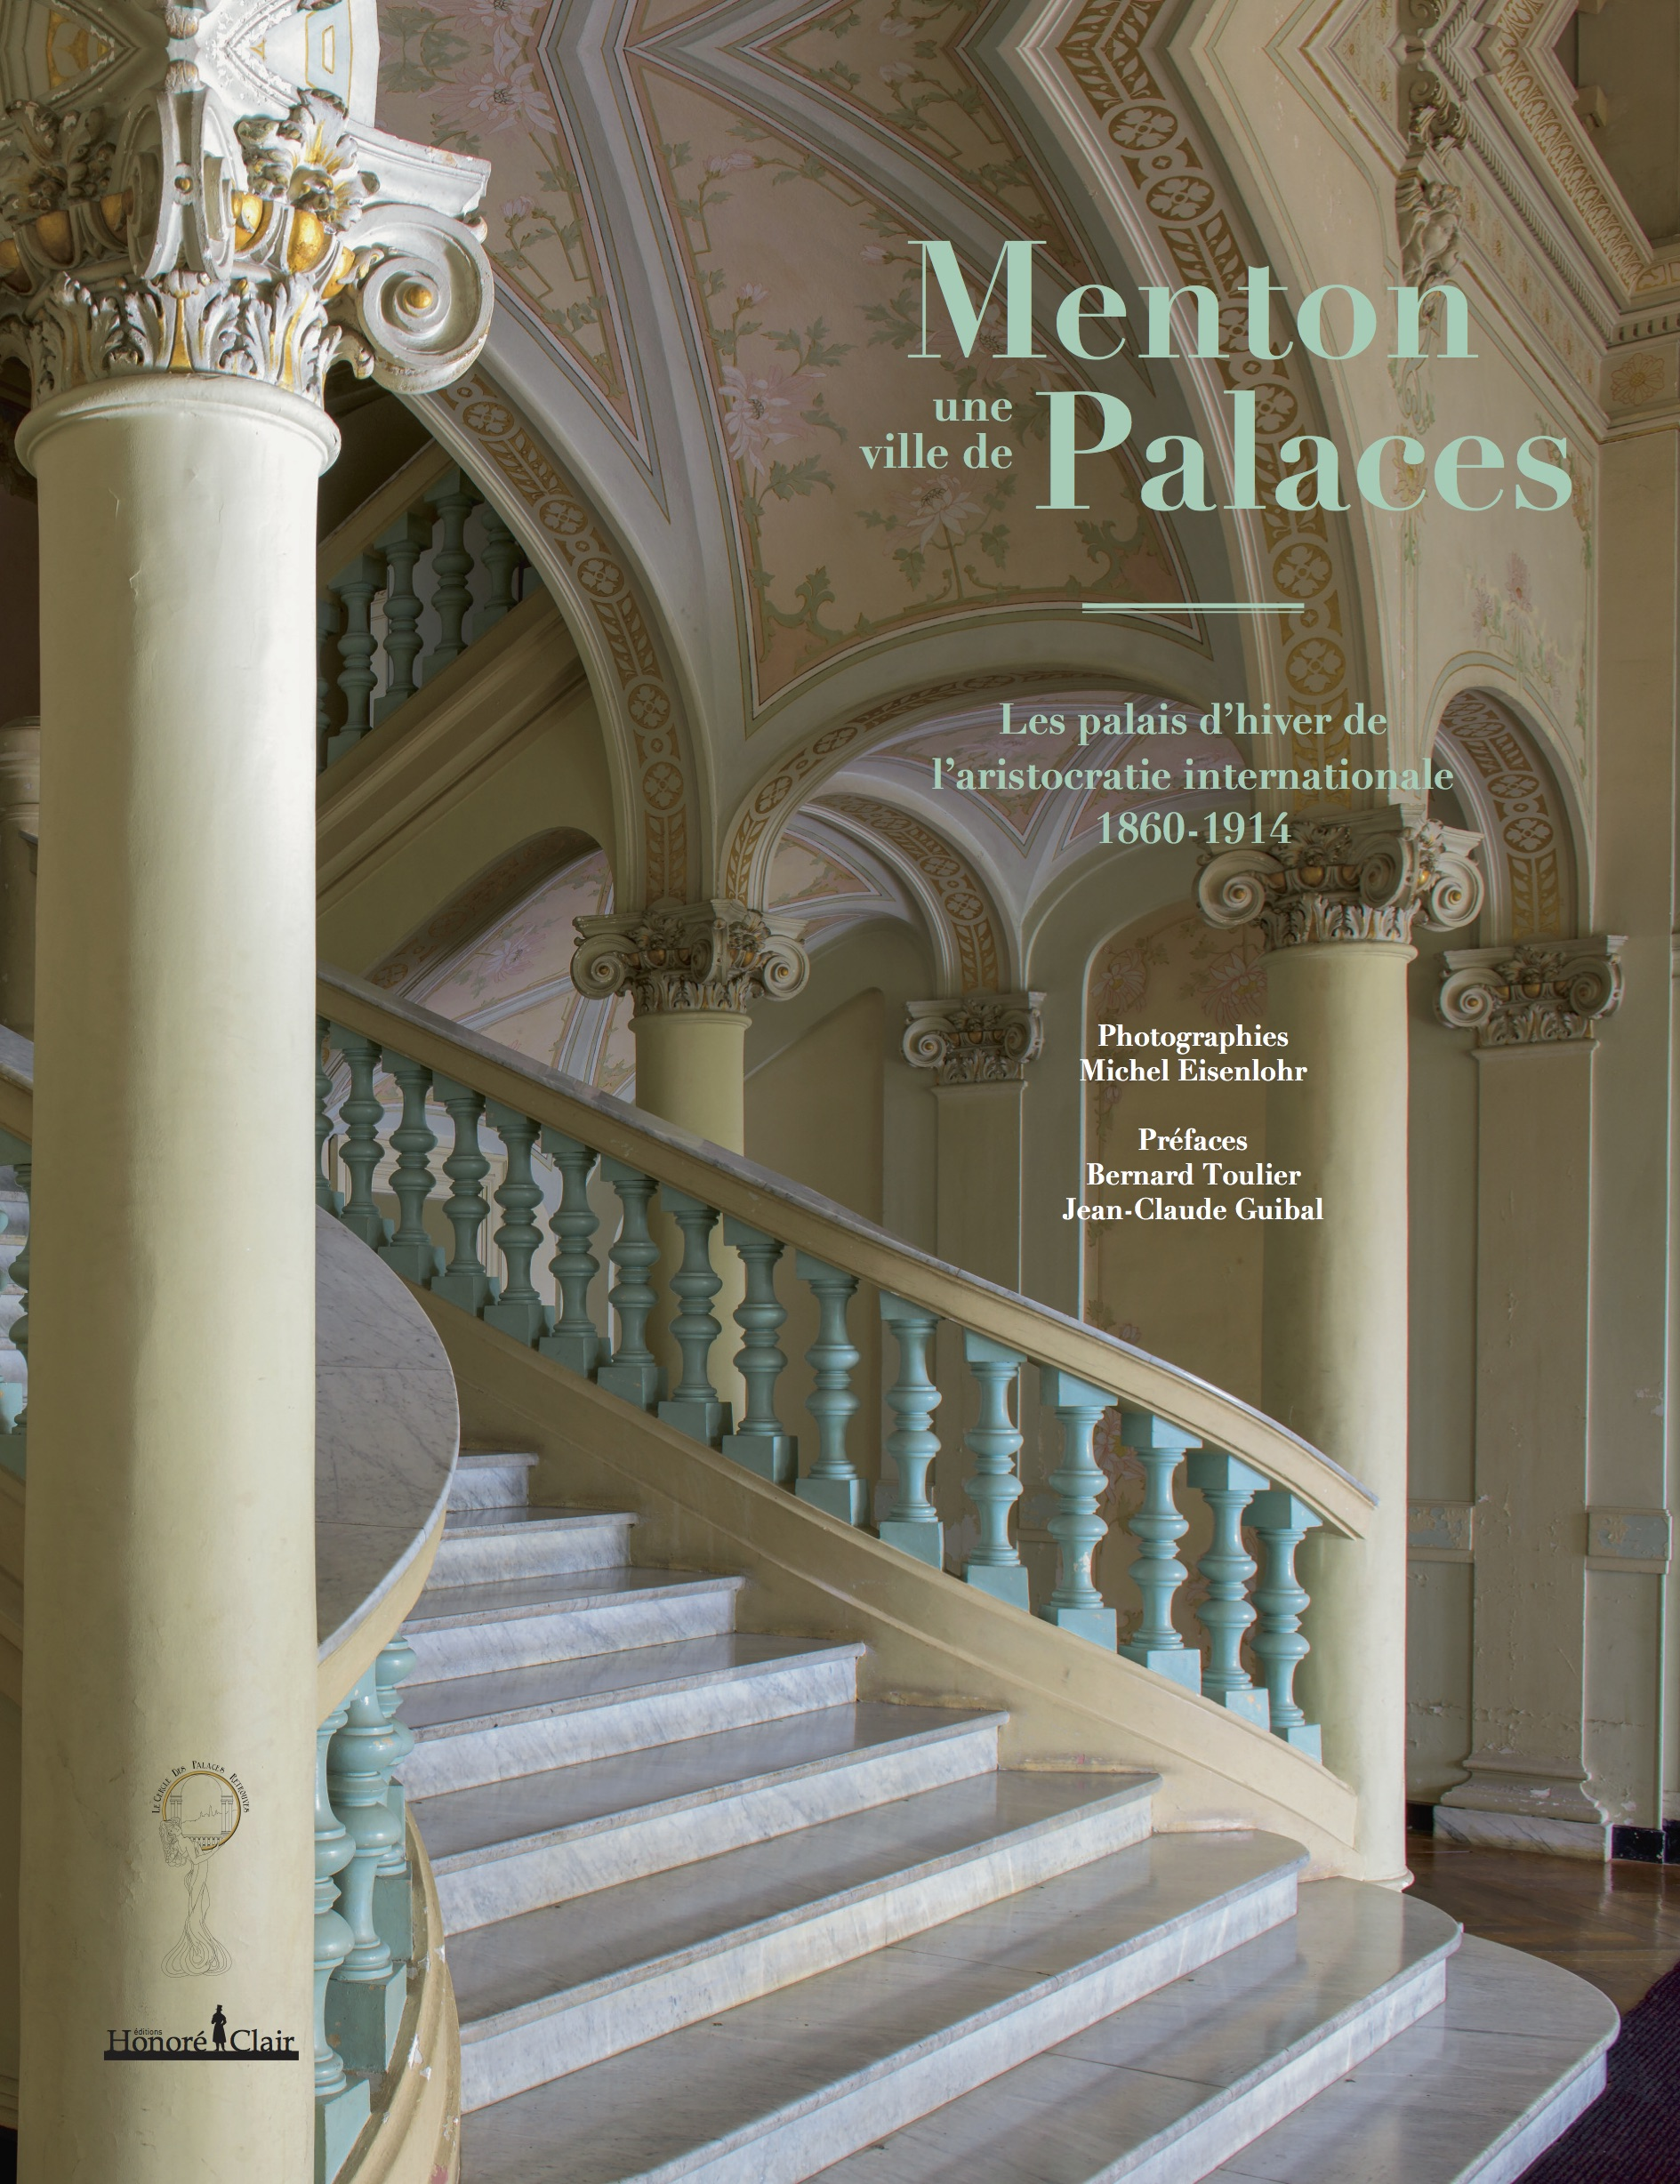 Photography Book Menton, une ville de palaces, Michel Eisenlohr